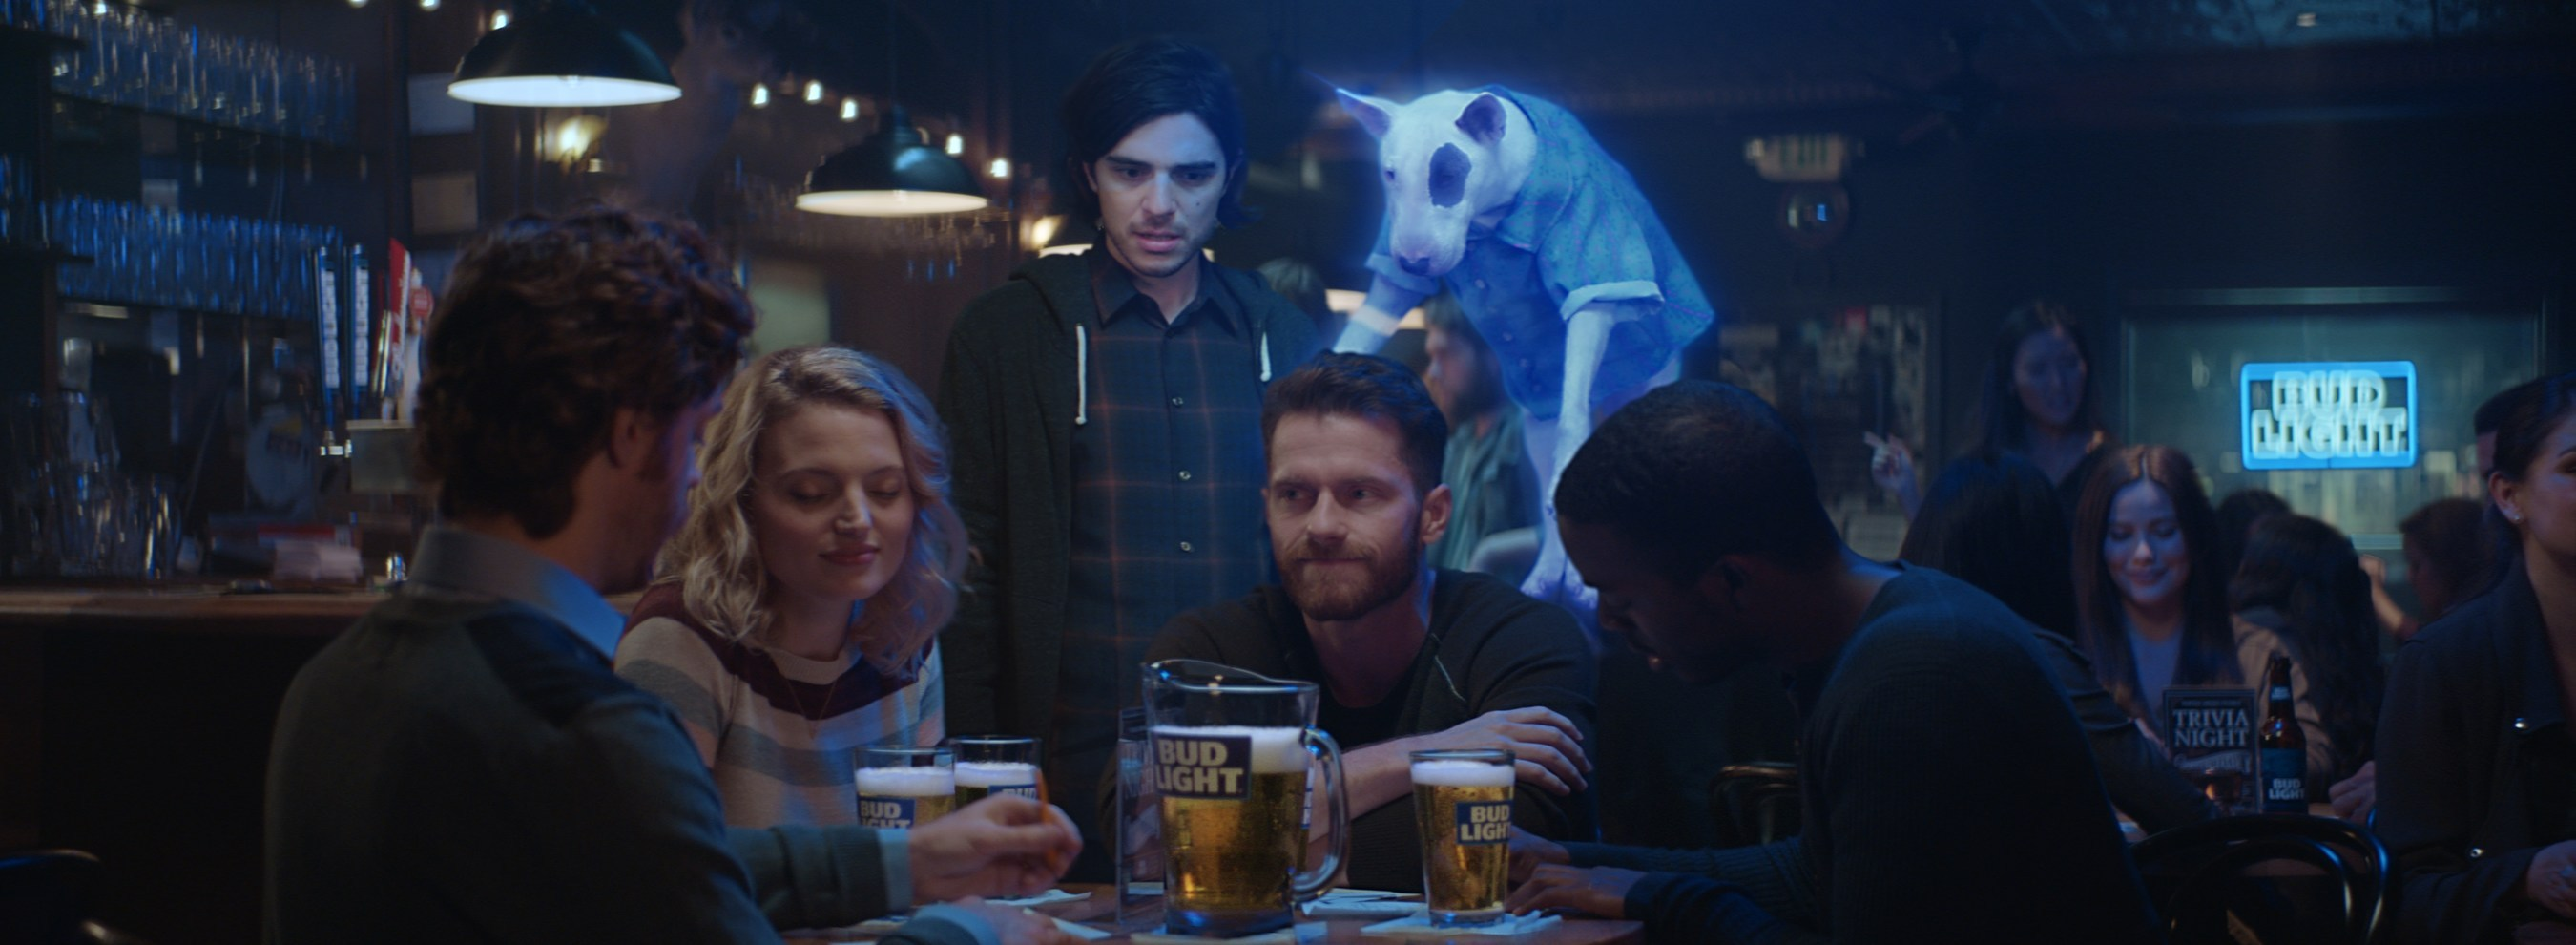 Super bowl li 51 beer commercial review the beer connoisseur bud light puts friendship front and center in super bowl ad spot by featuring bud light aloadofball Images